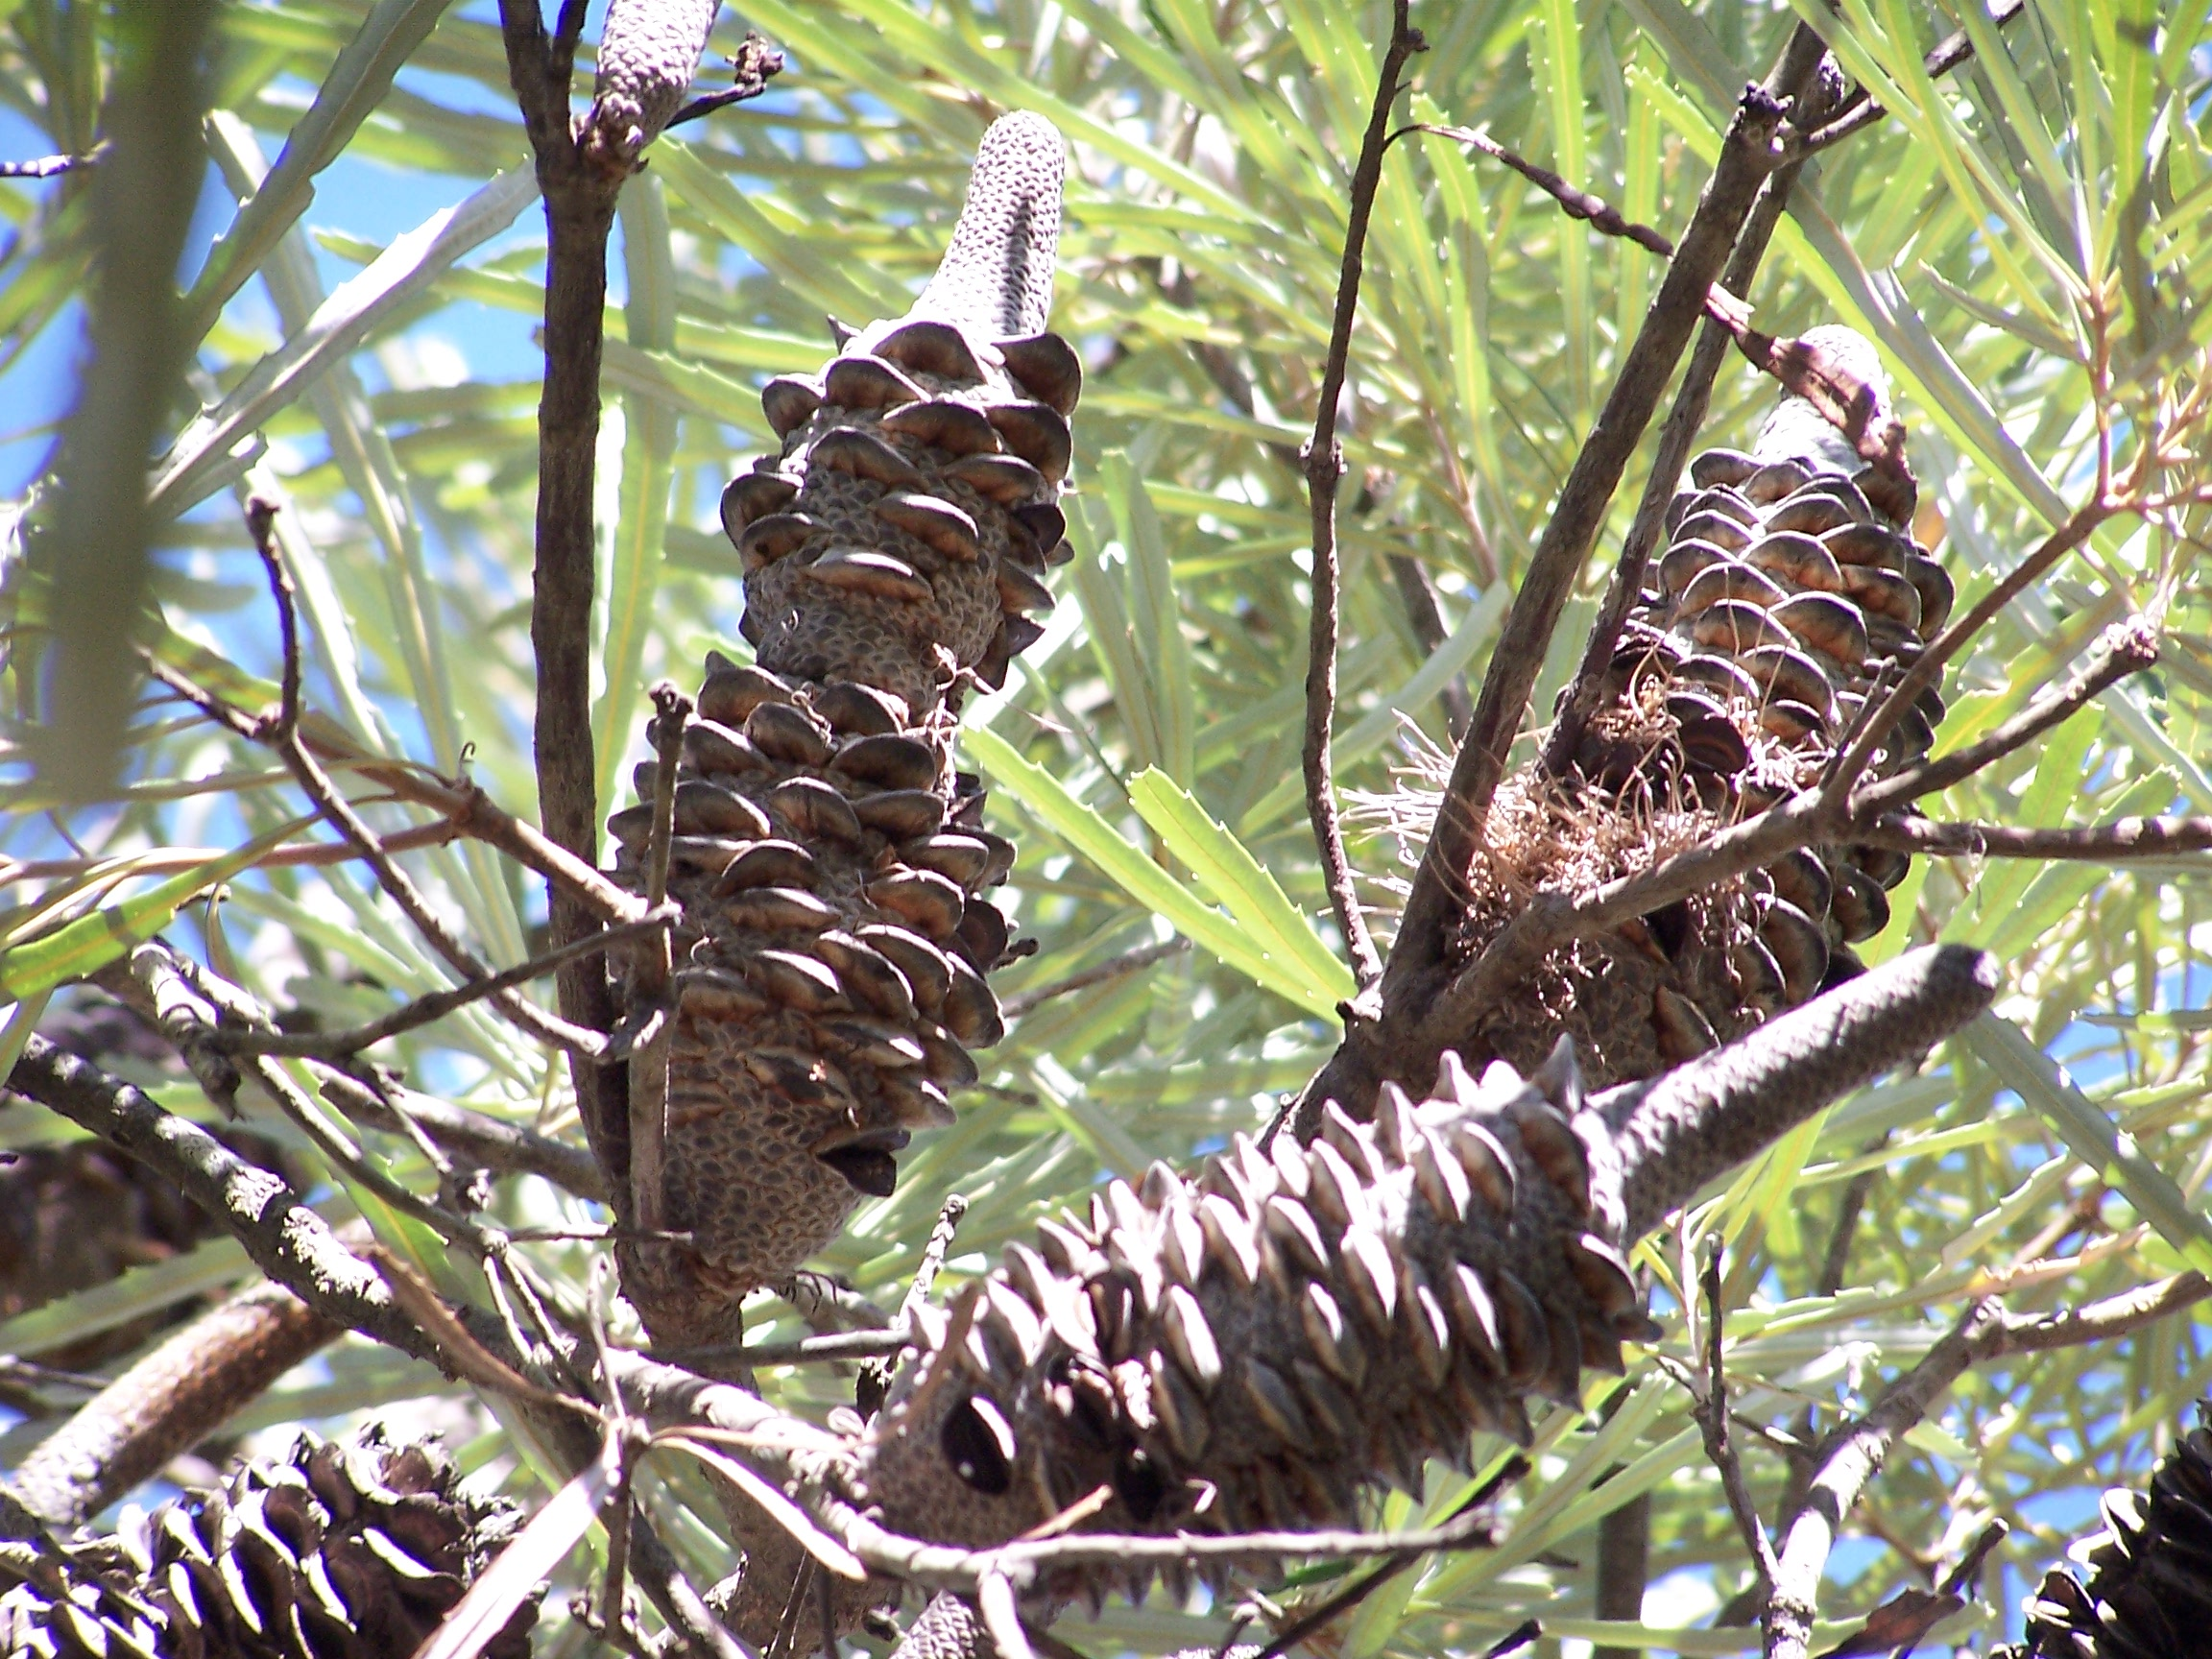 Banksia seed pods